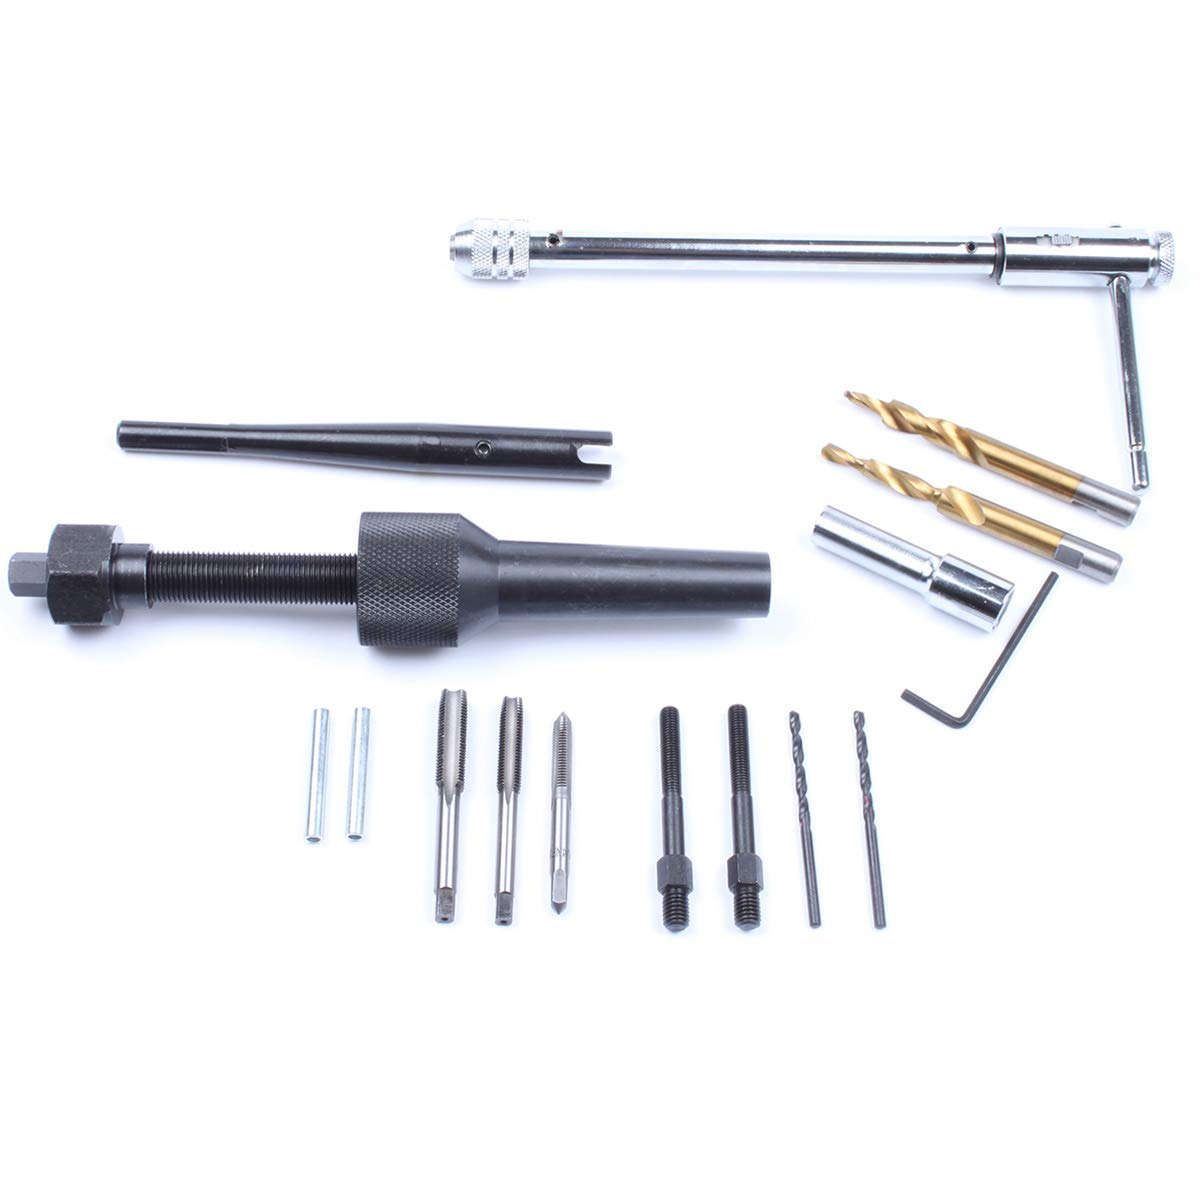 Ctool 16pcs Glow Plug Removal Remover Tool Set 8mm 10mm Damaged Damage Extractor Tool Kit